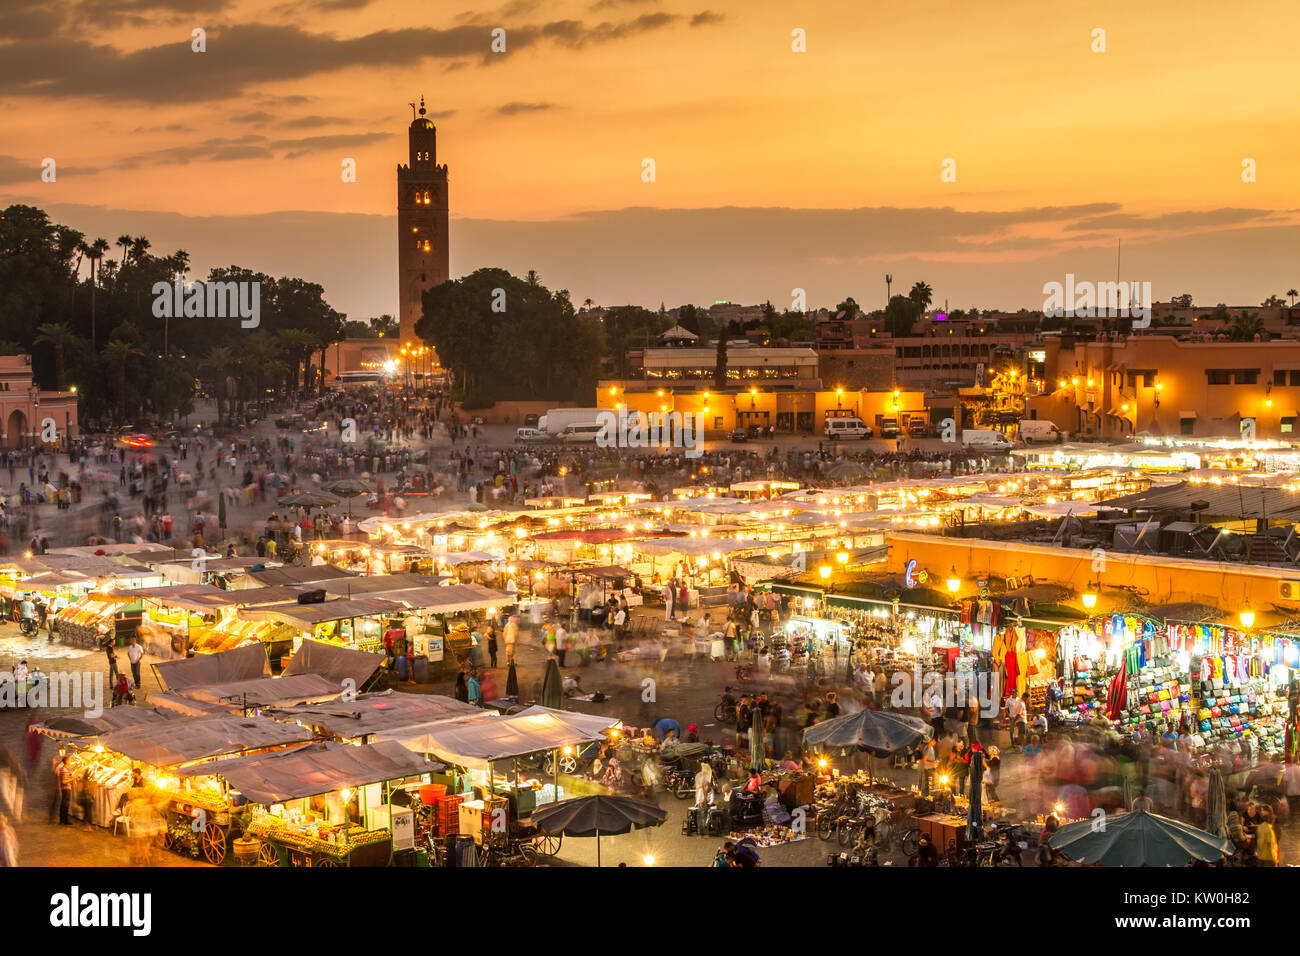 Jamaa el Fna market square in sunset, Marrakesh, Morocco, north Africa. - Stock Image